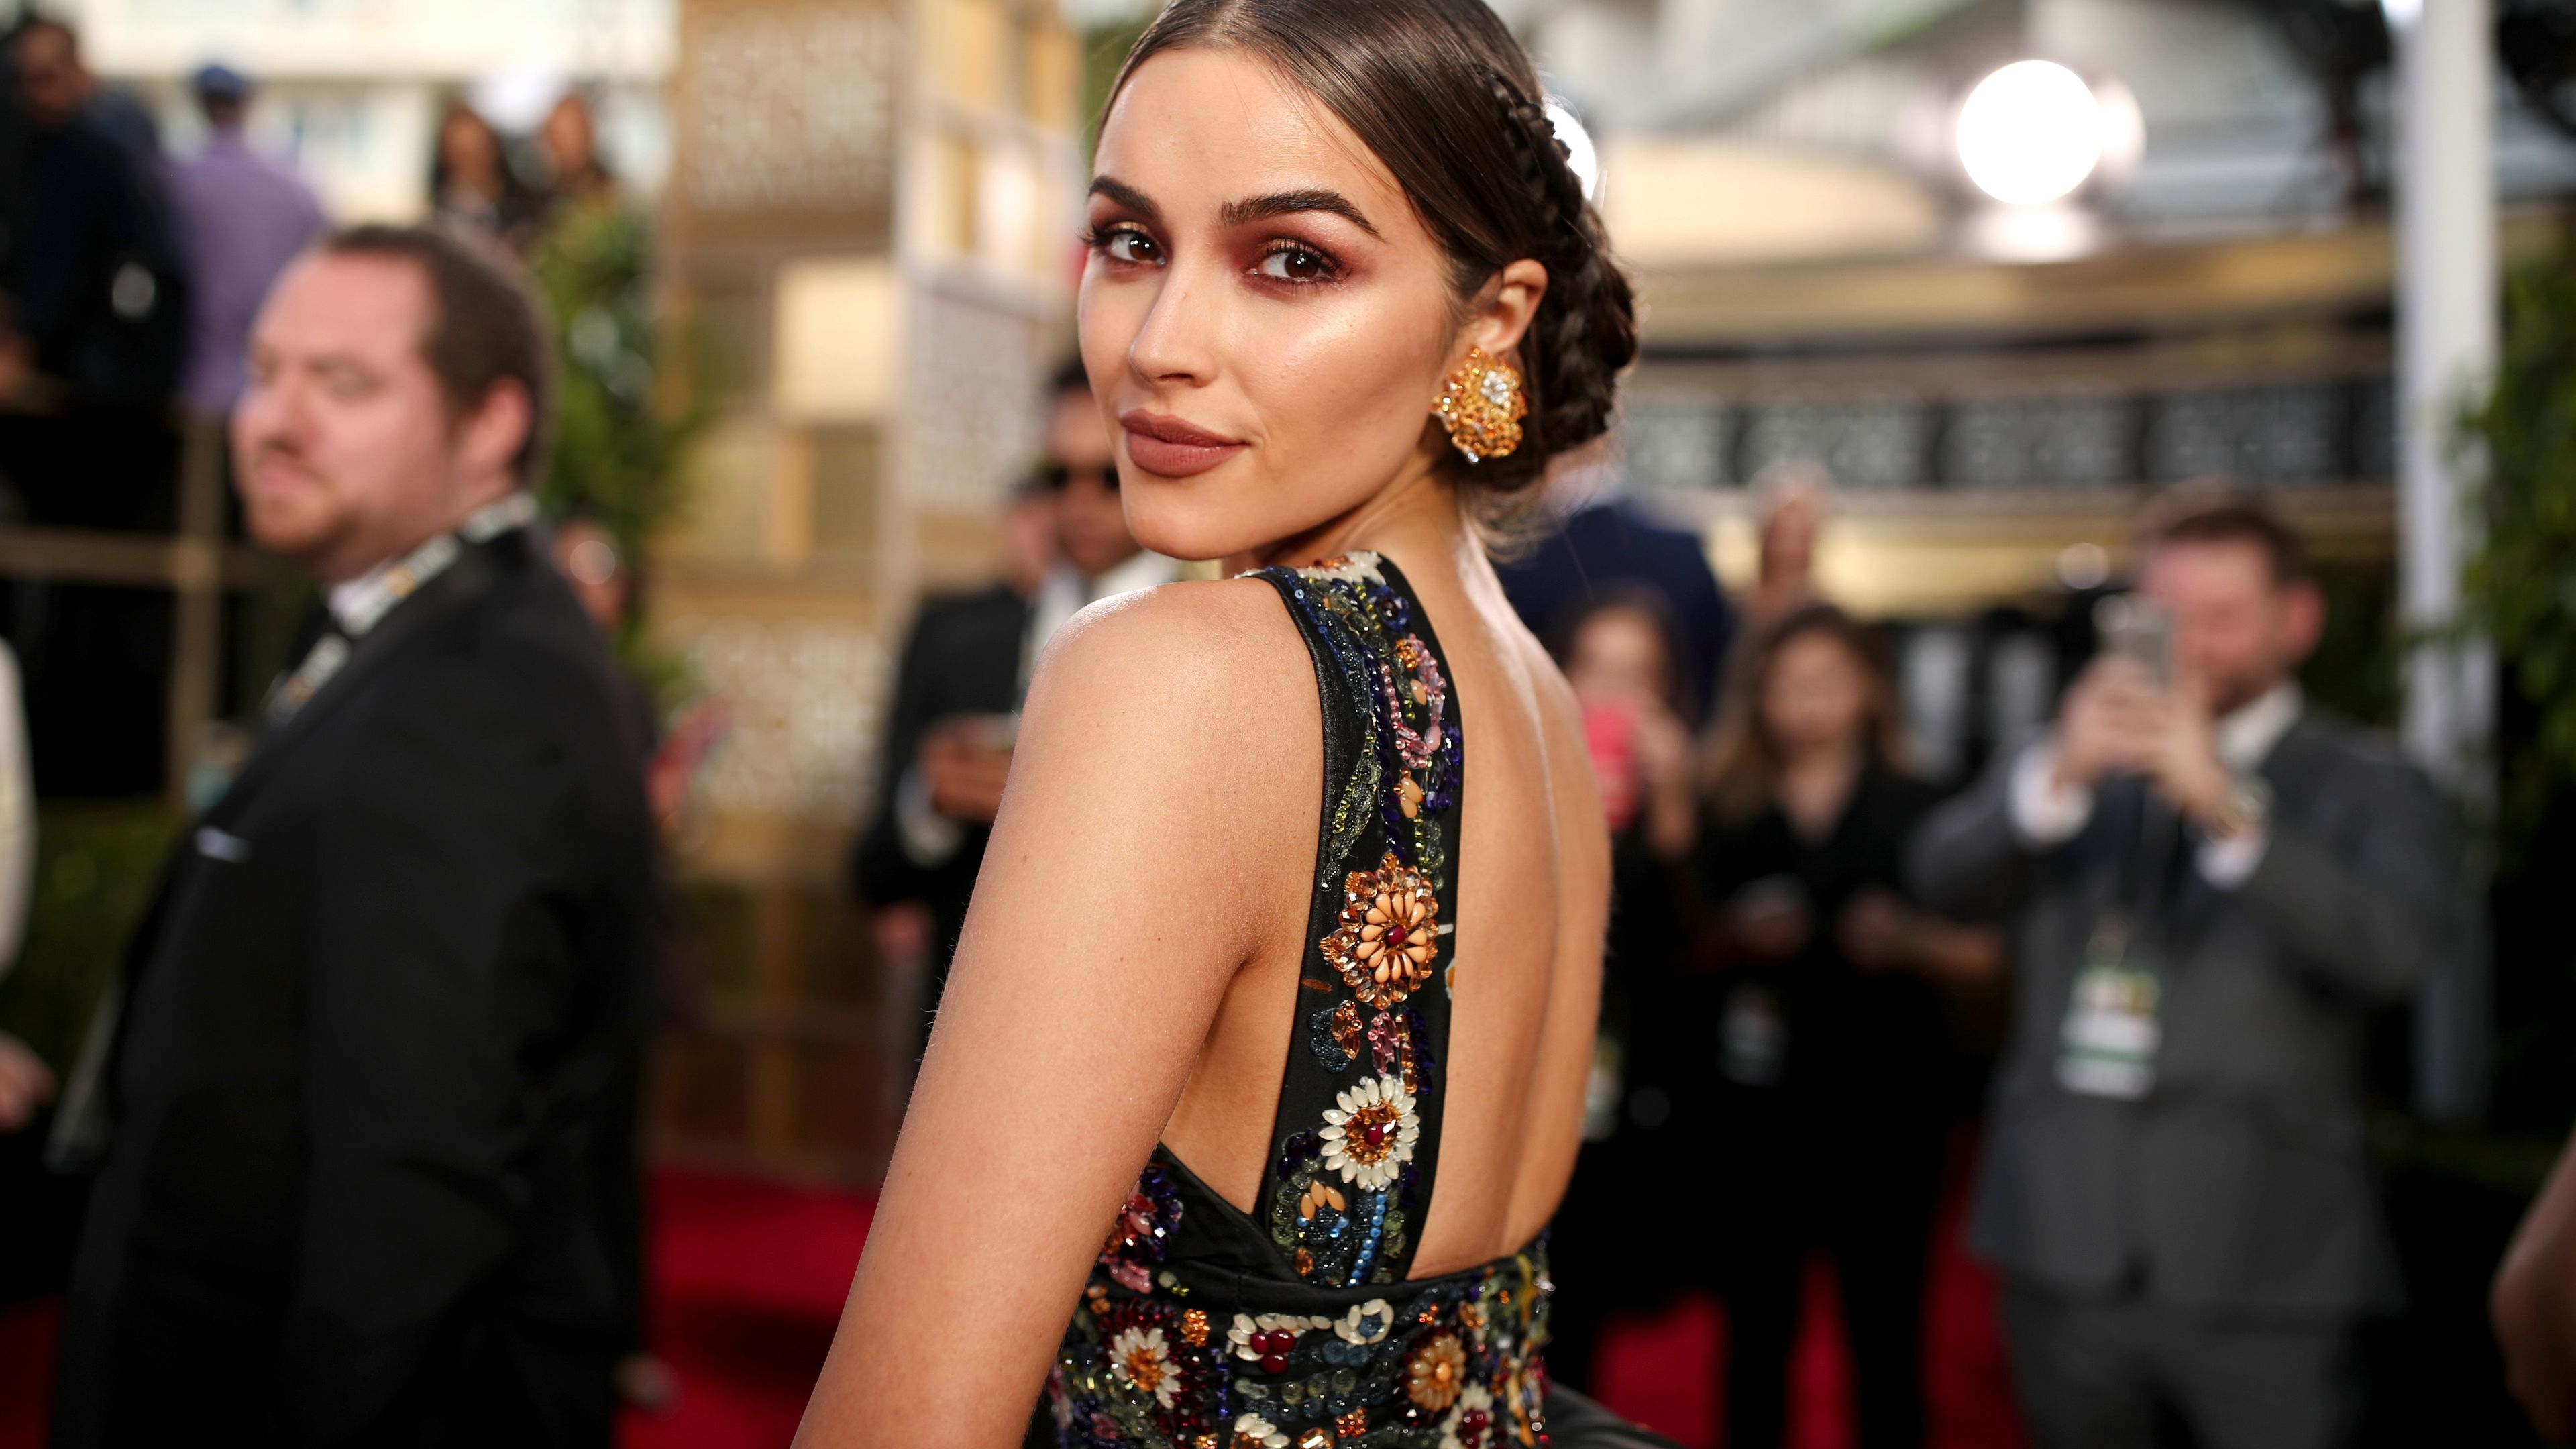 olivia culpo marie claire 1536946918 - Olivia Culpo Marie Claire - olivia culpo wallpapers, hd-wallpapers, girls wallpapers, celebrities wallpapers, 4k-wallpapers